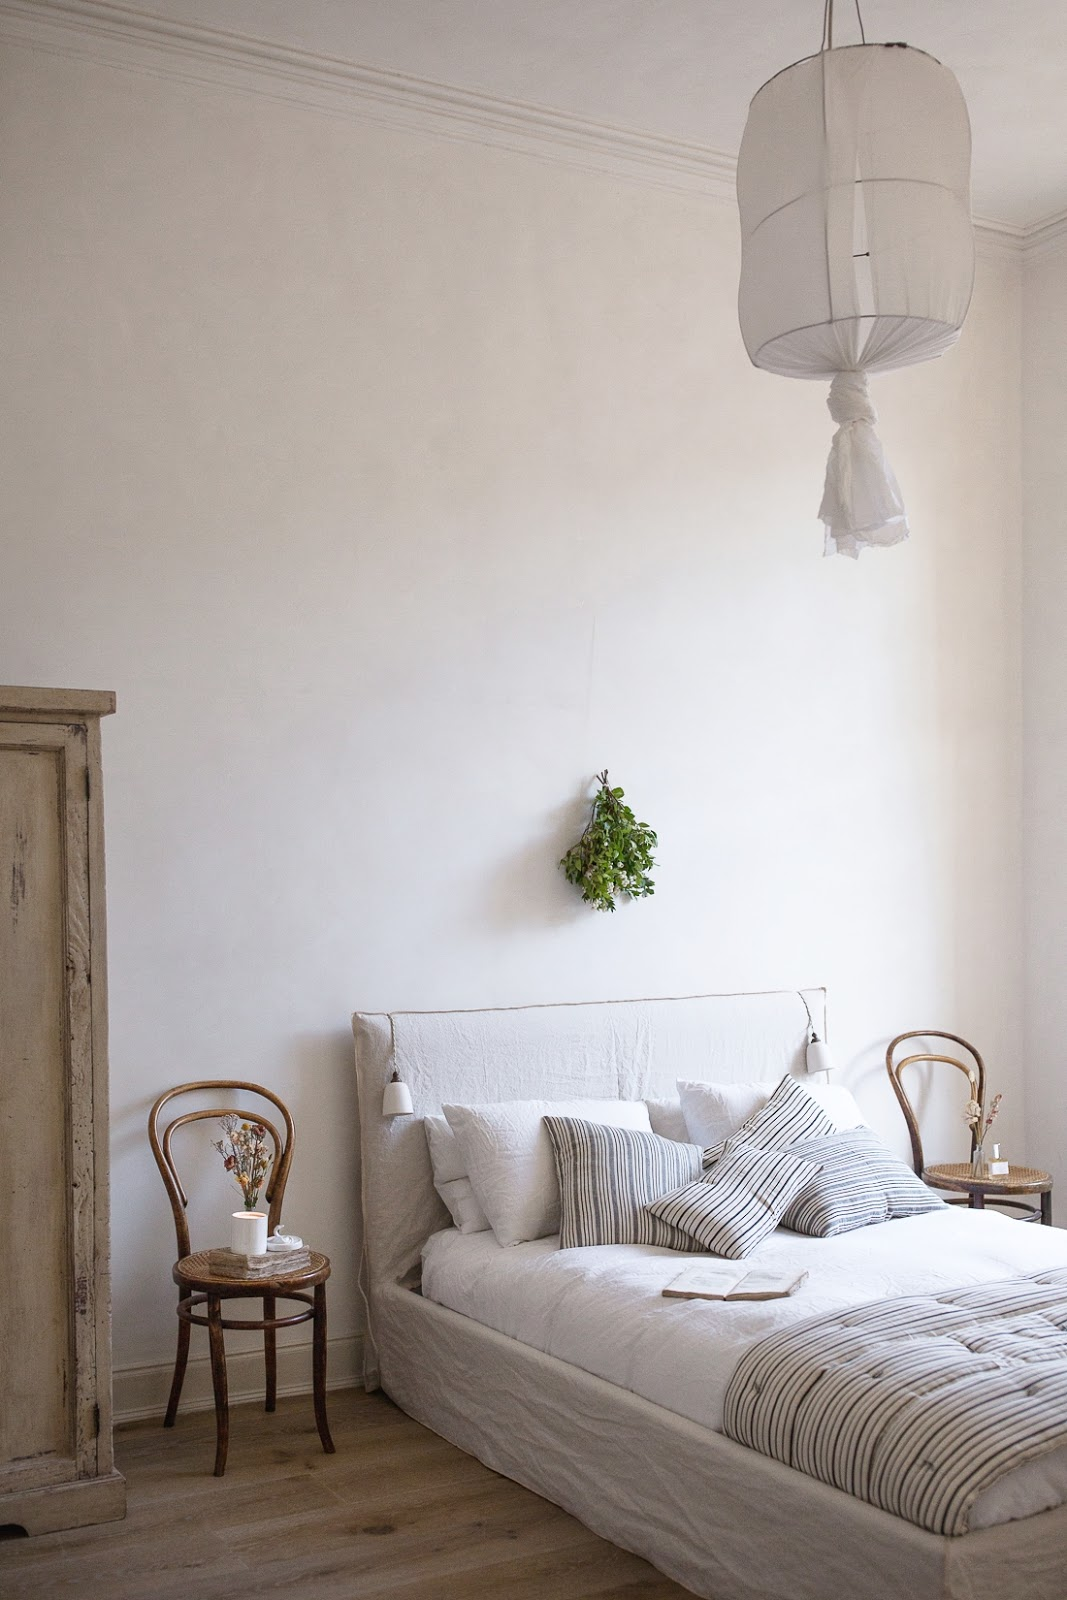 ilaria fatone - a comforting and minimal home - the bedroom